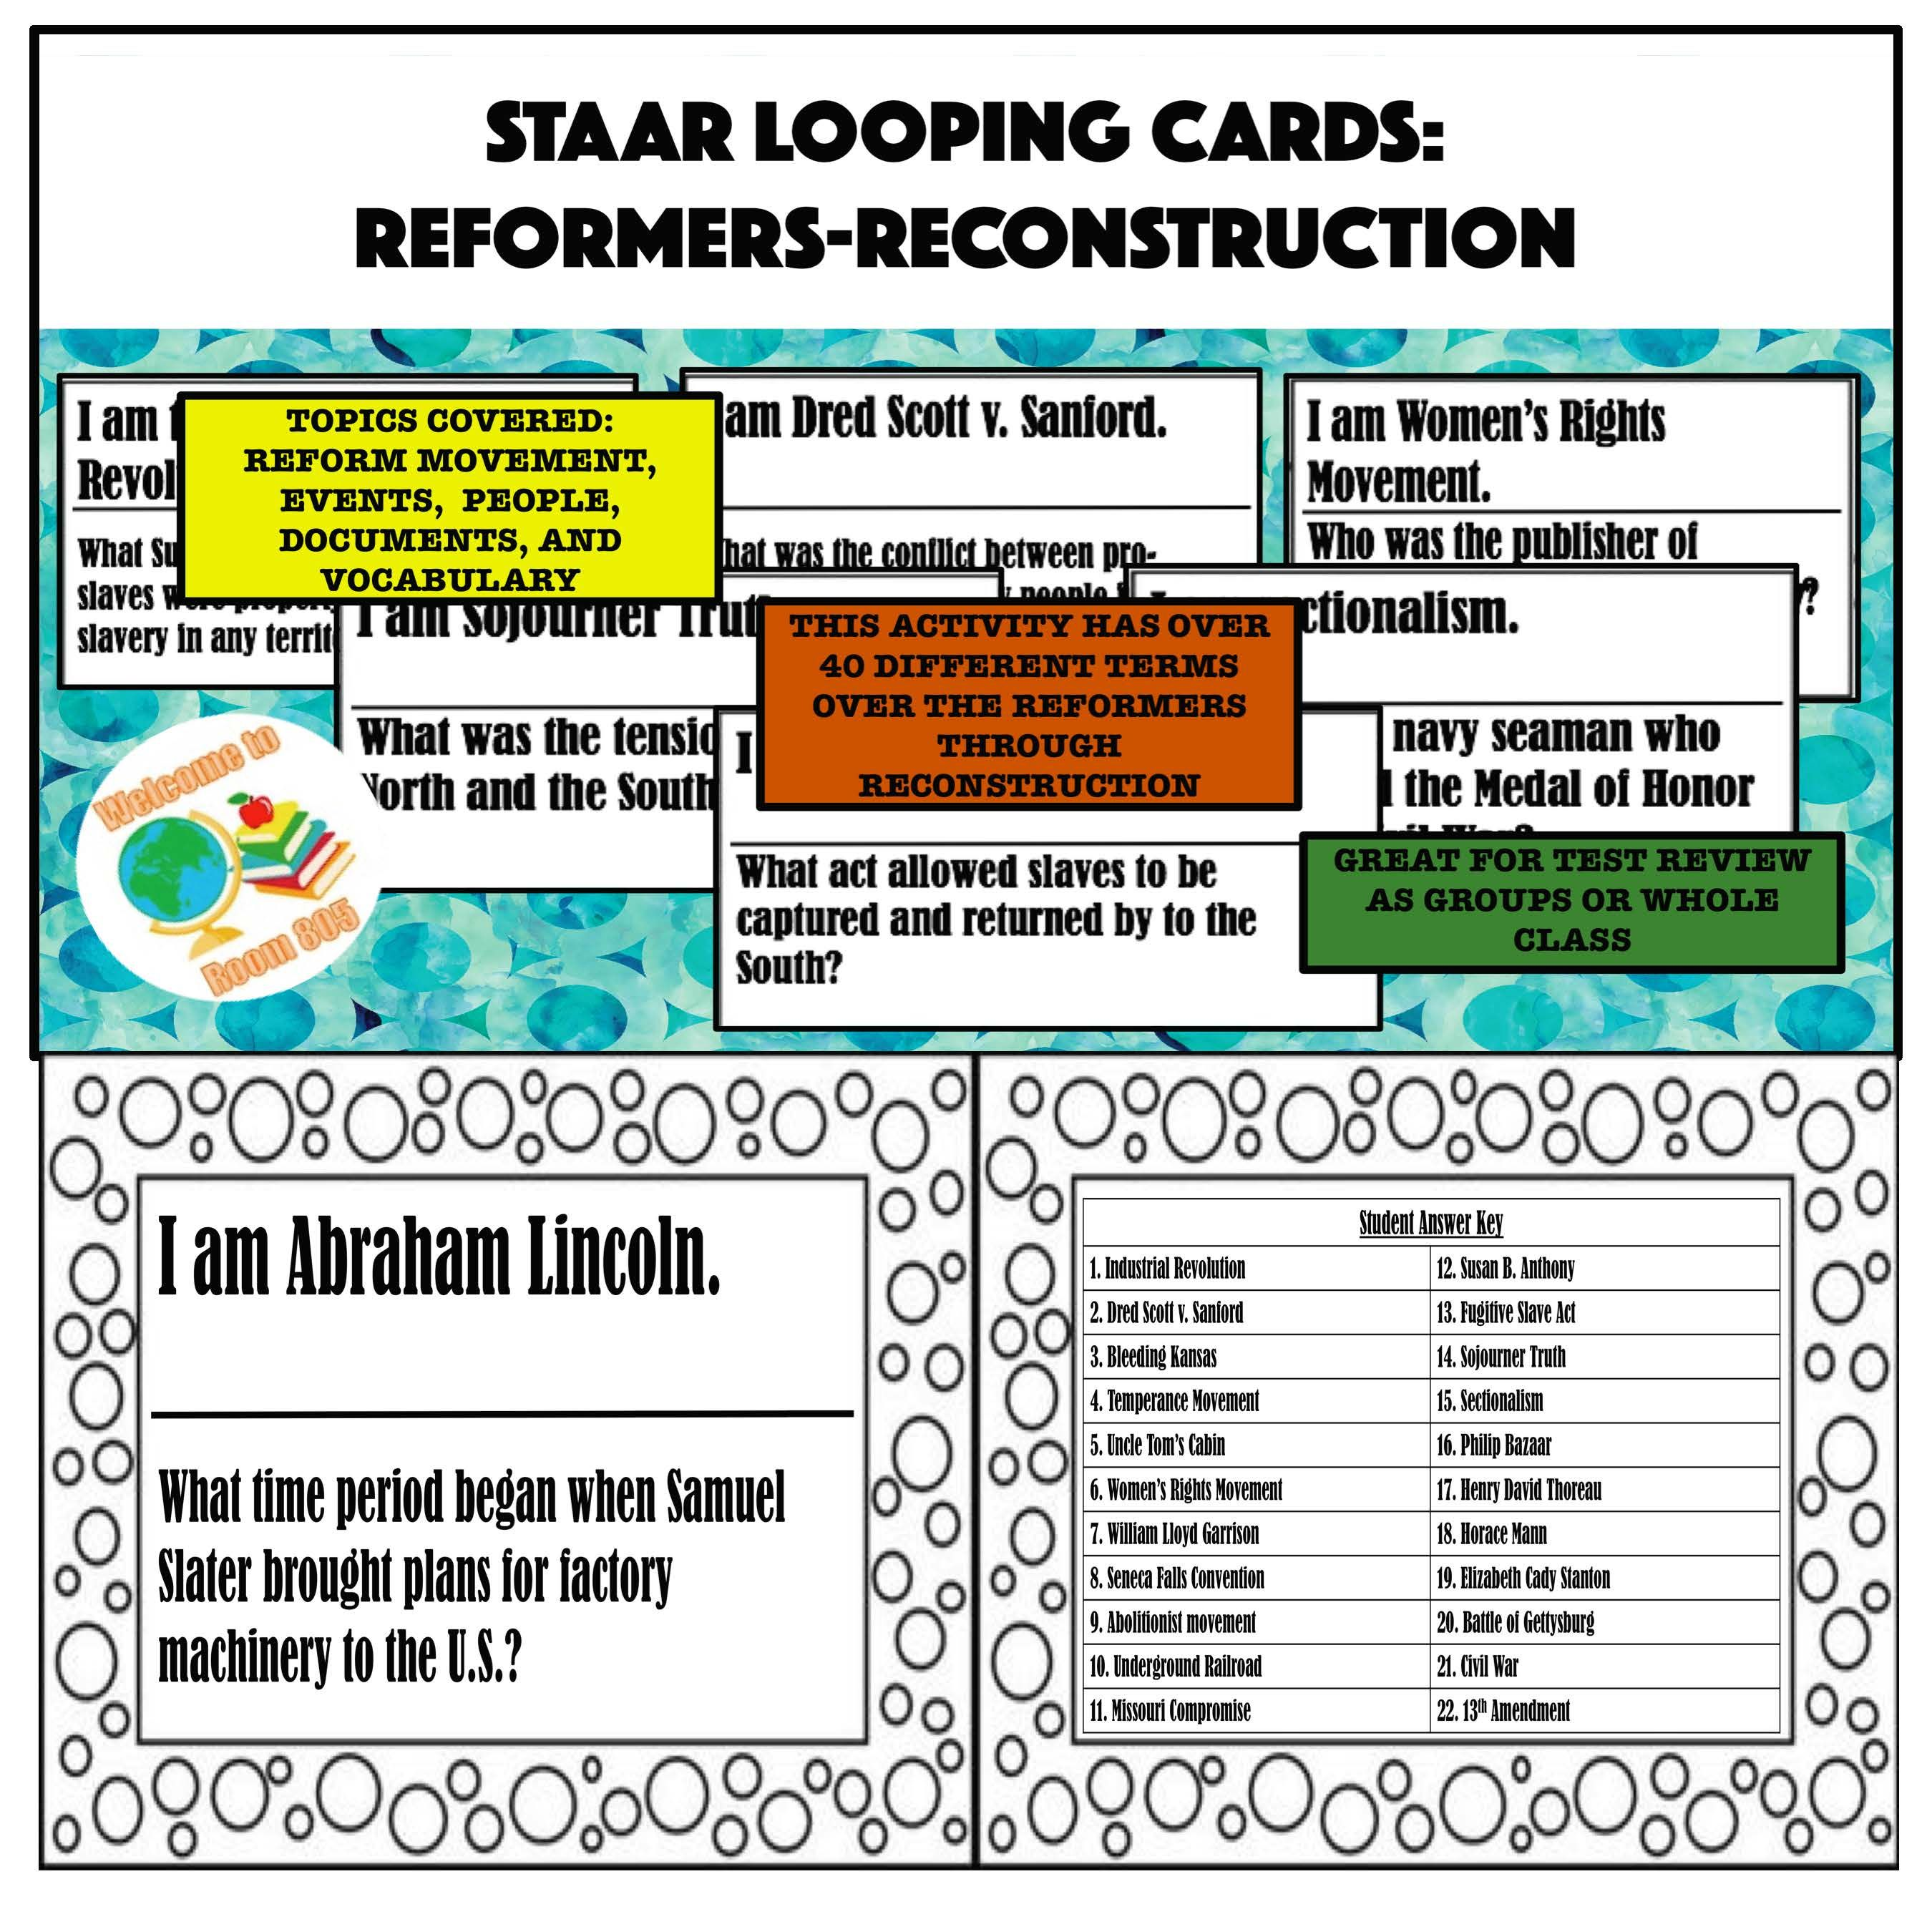 Staar Review Looping Cards For Reformers Reconstruction